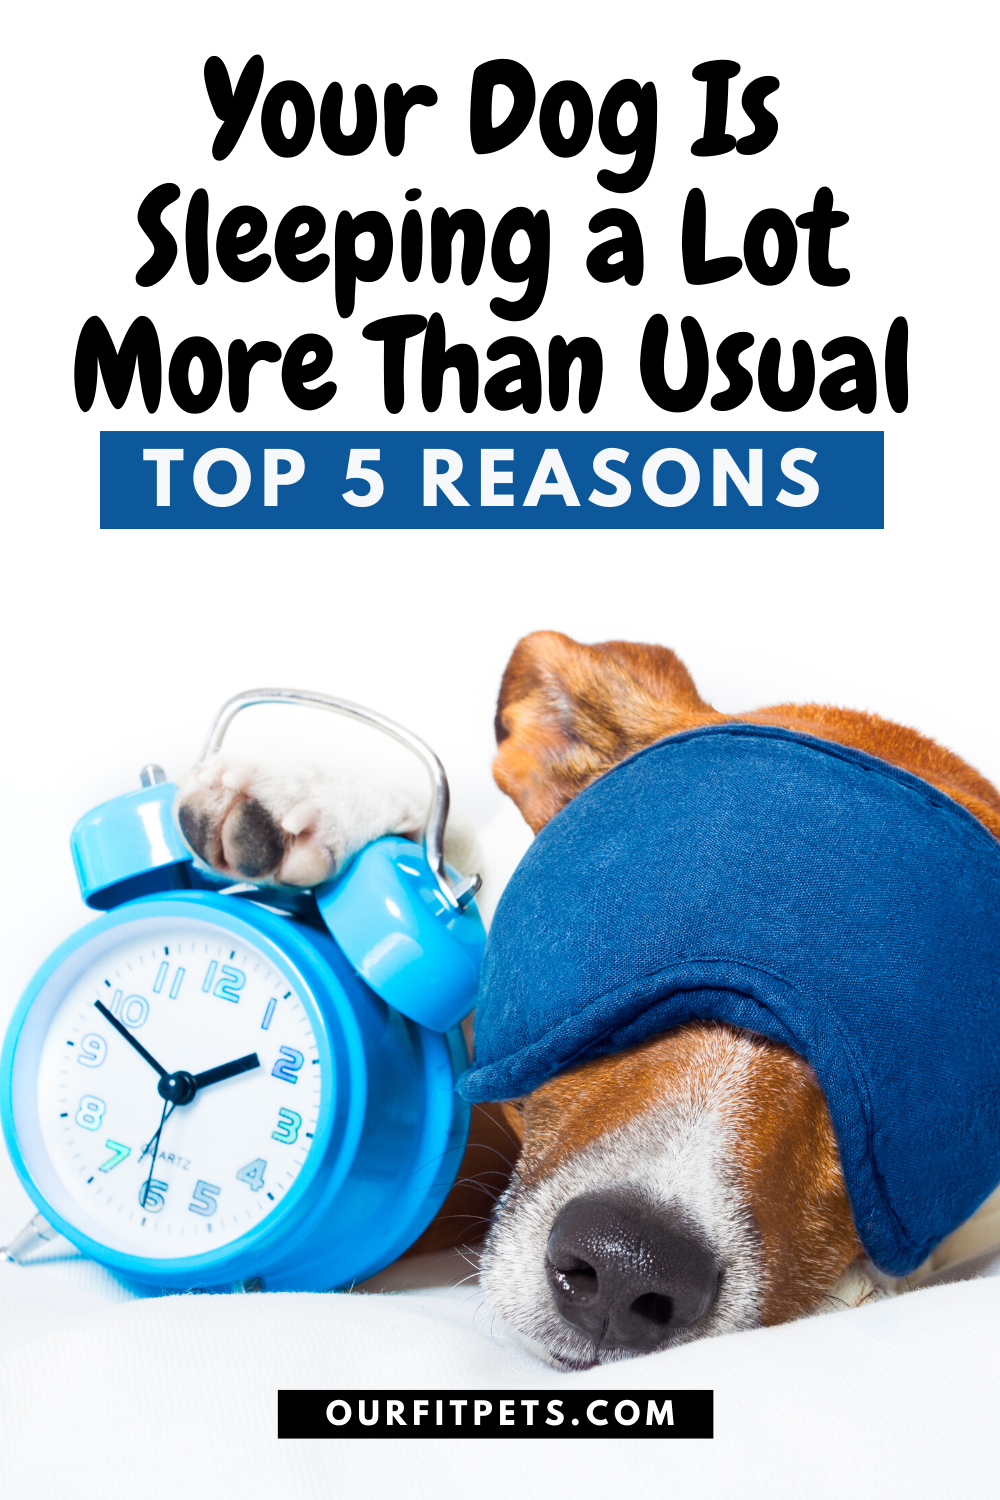 Your Dog Is Sleeping A Lot More Than Usual Top 5 Reasons Our Fit Pets Meds For Dogs Your Dog Cat Advice